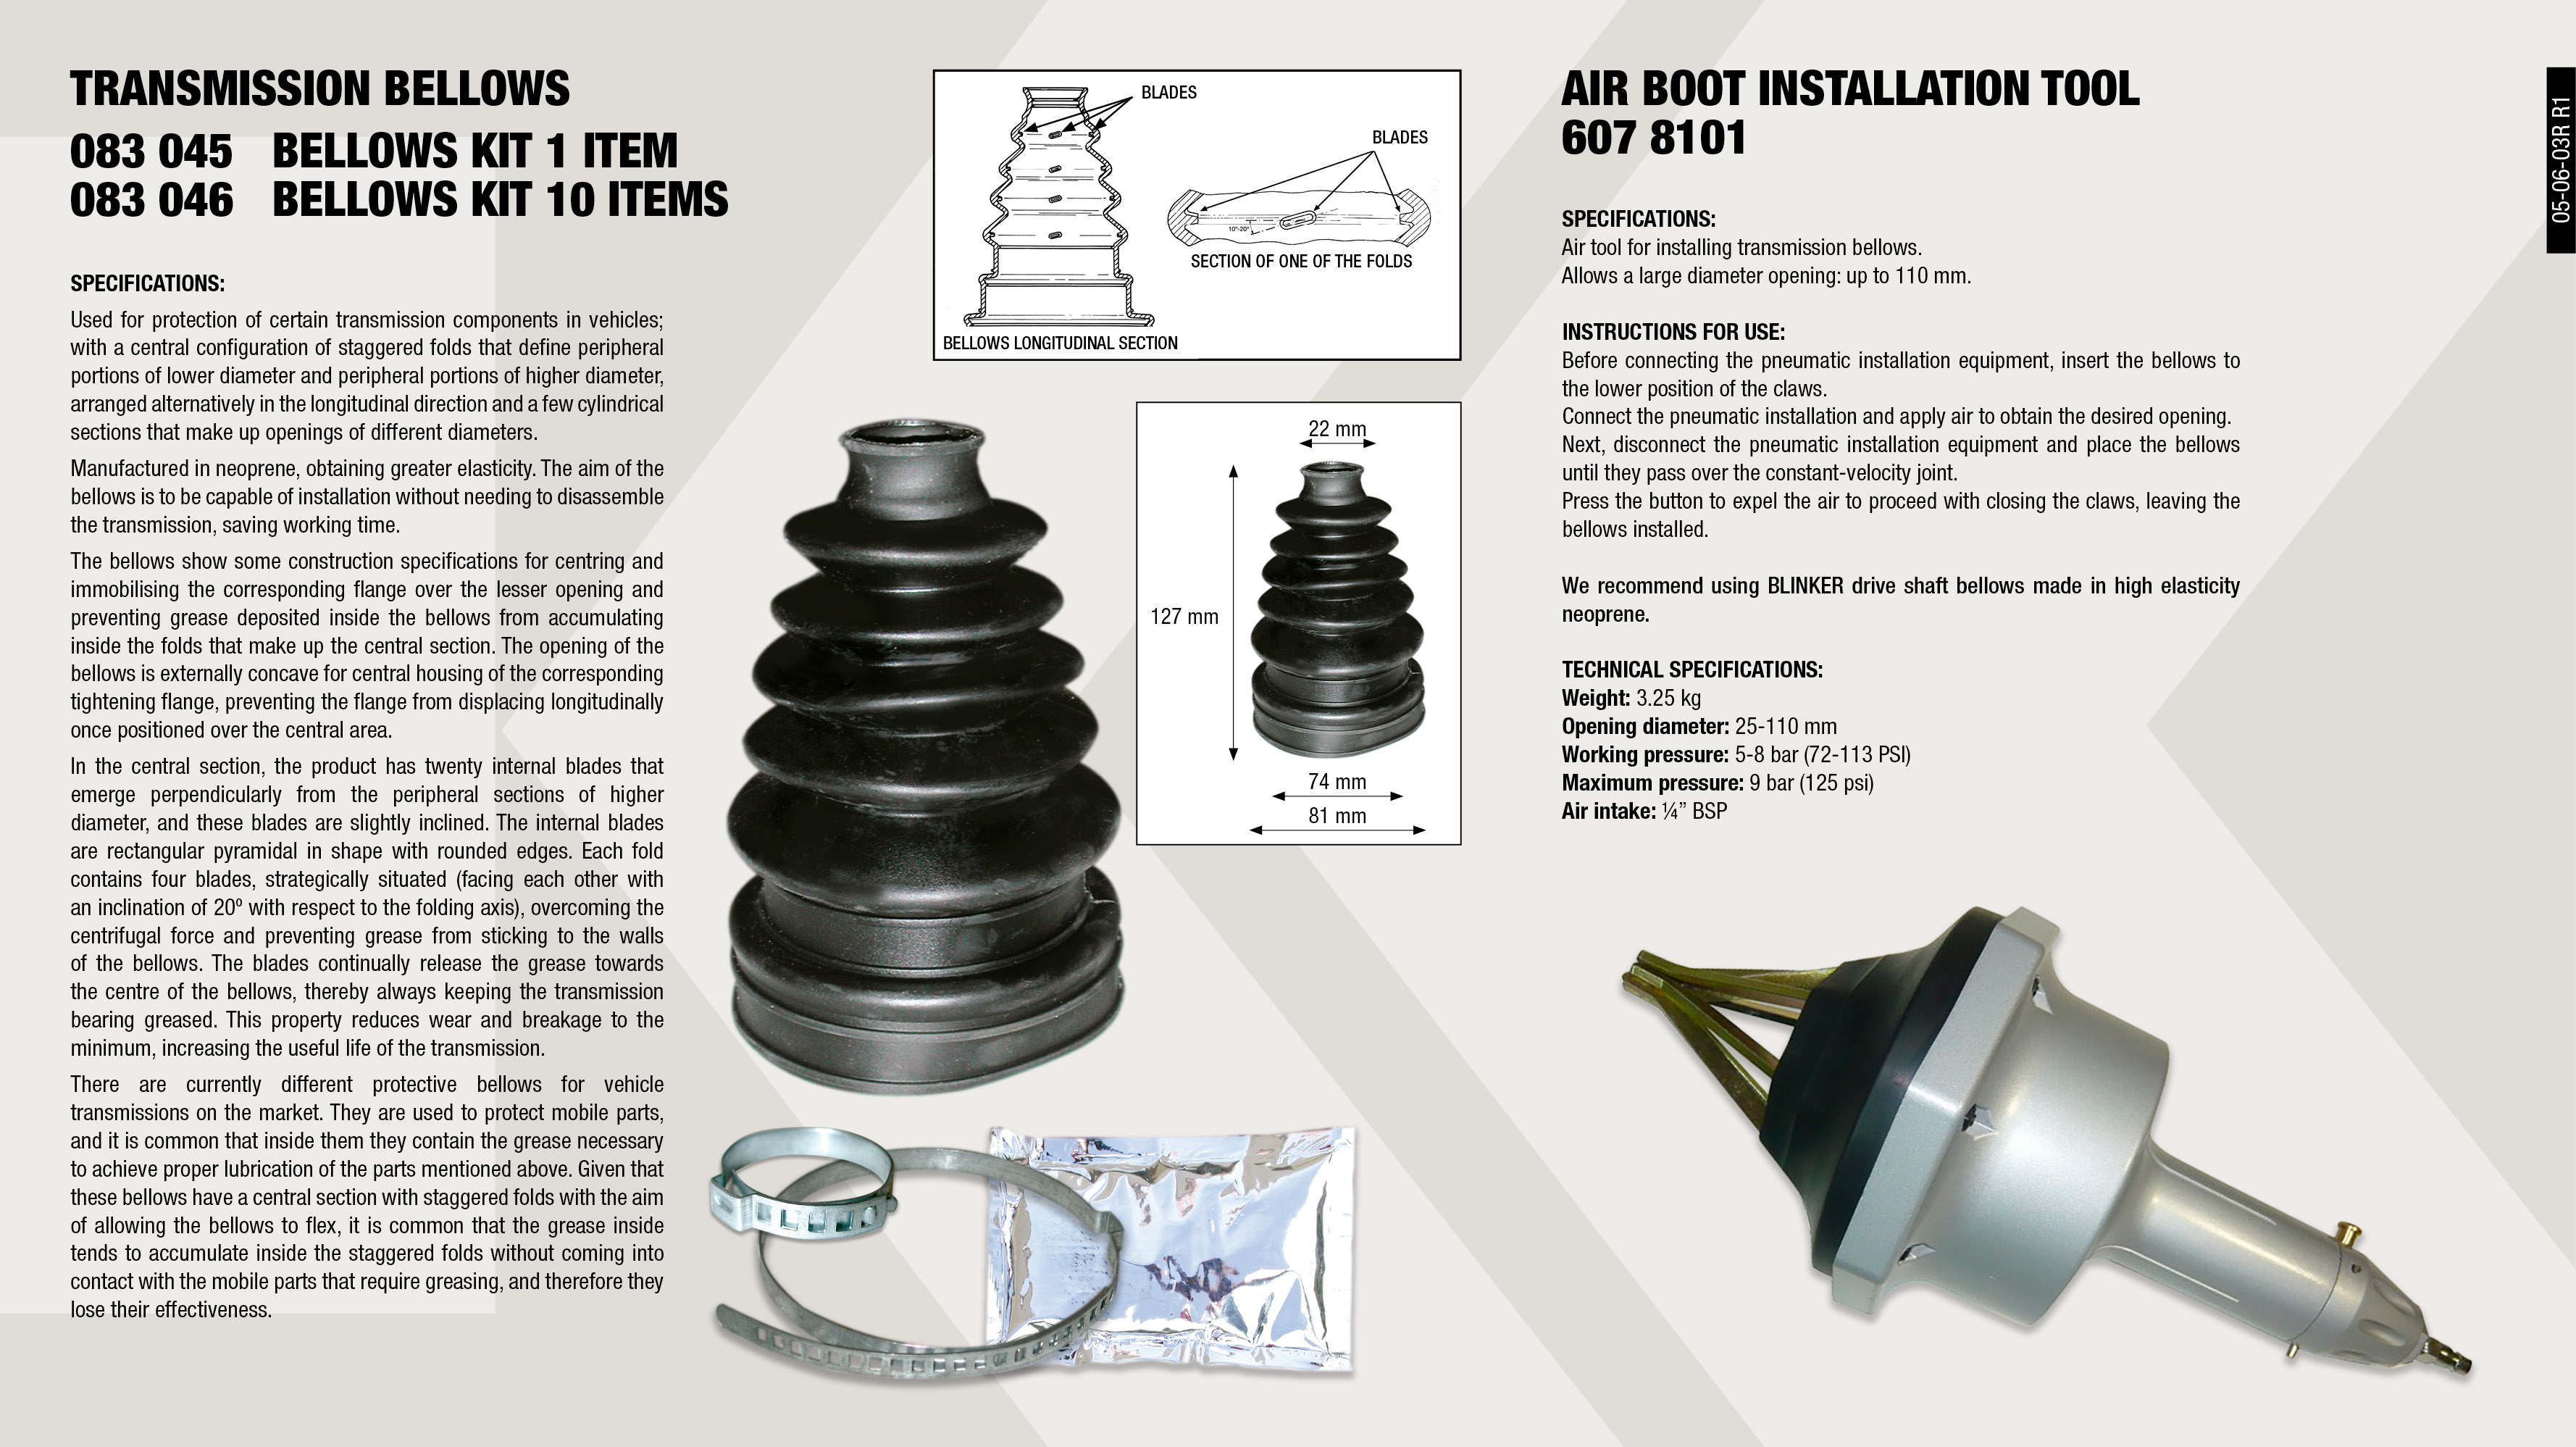 AIR BOOT INSTALATION TOOL                                   ,  									TRANSMISION BOLT KIT                                        ,  									TRANSMISION BOLT KIT (10U.)                                 ,